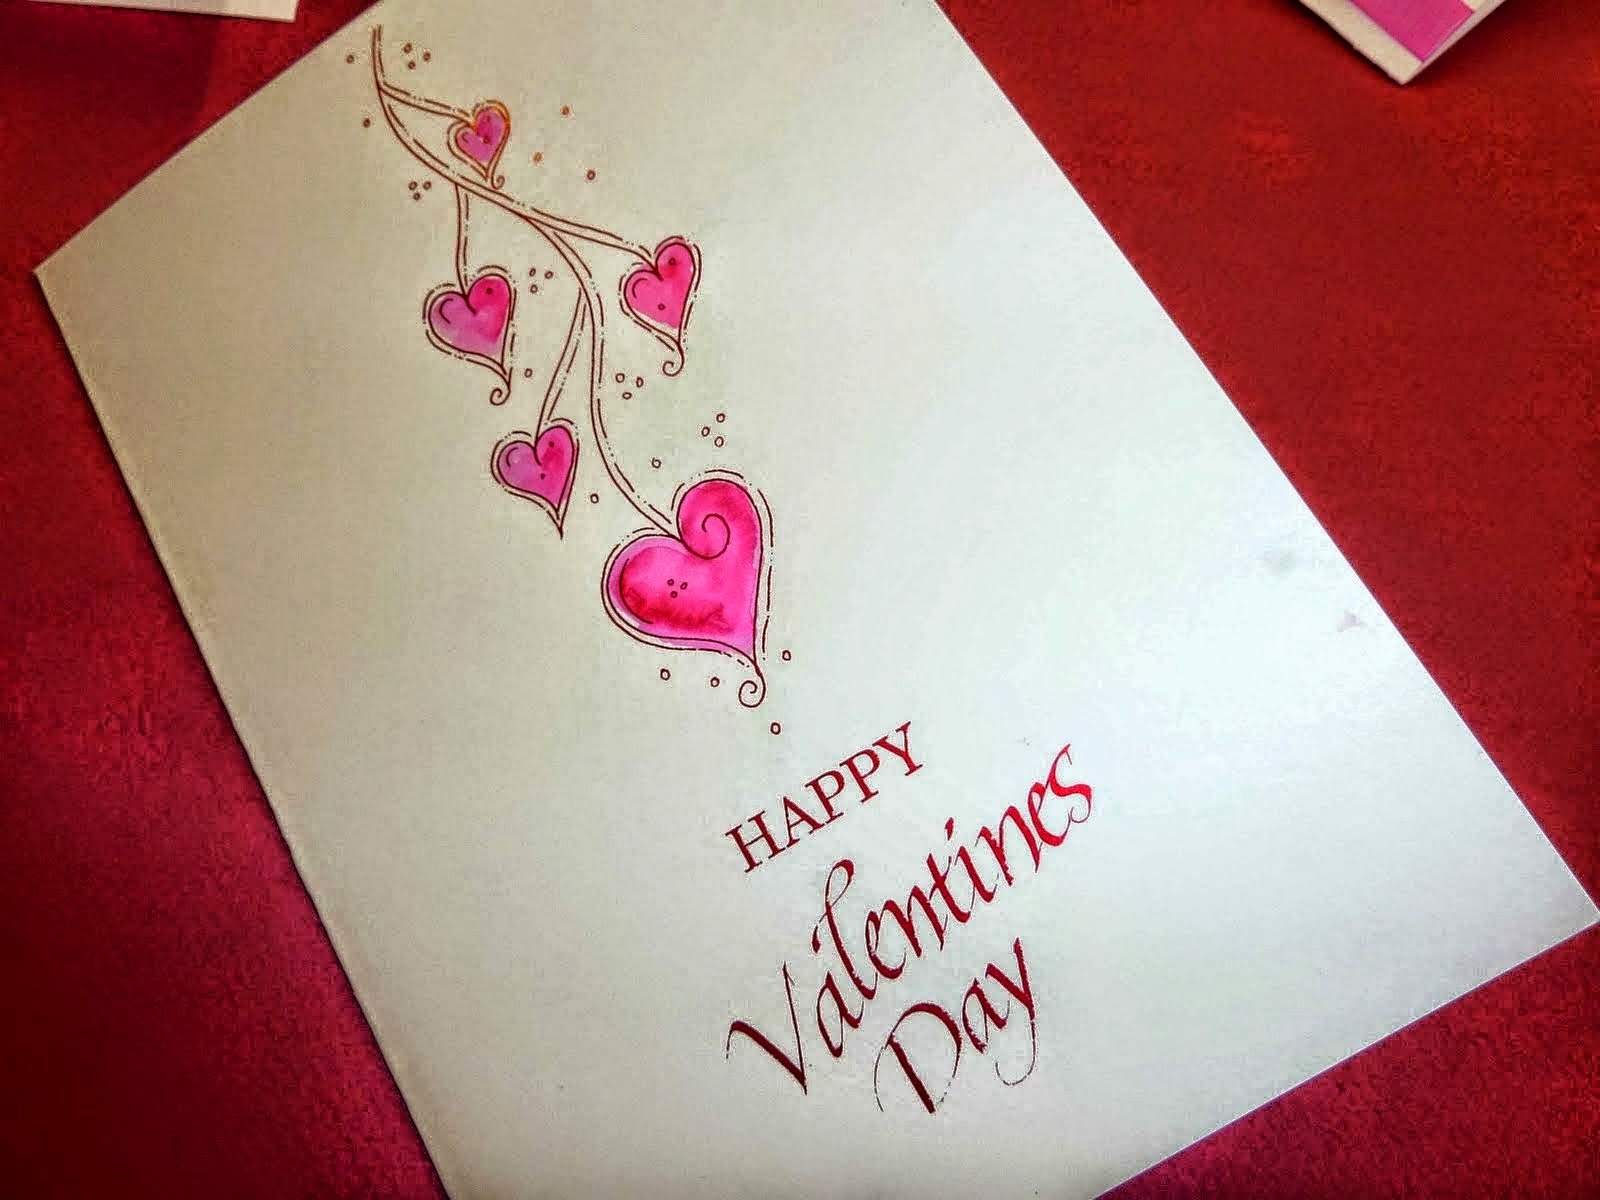 Happy valentines day images greeting cards wishes 2018 happy valentines day images greeting cards wishes 2018 kristyandbryce Image collections